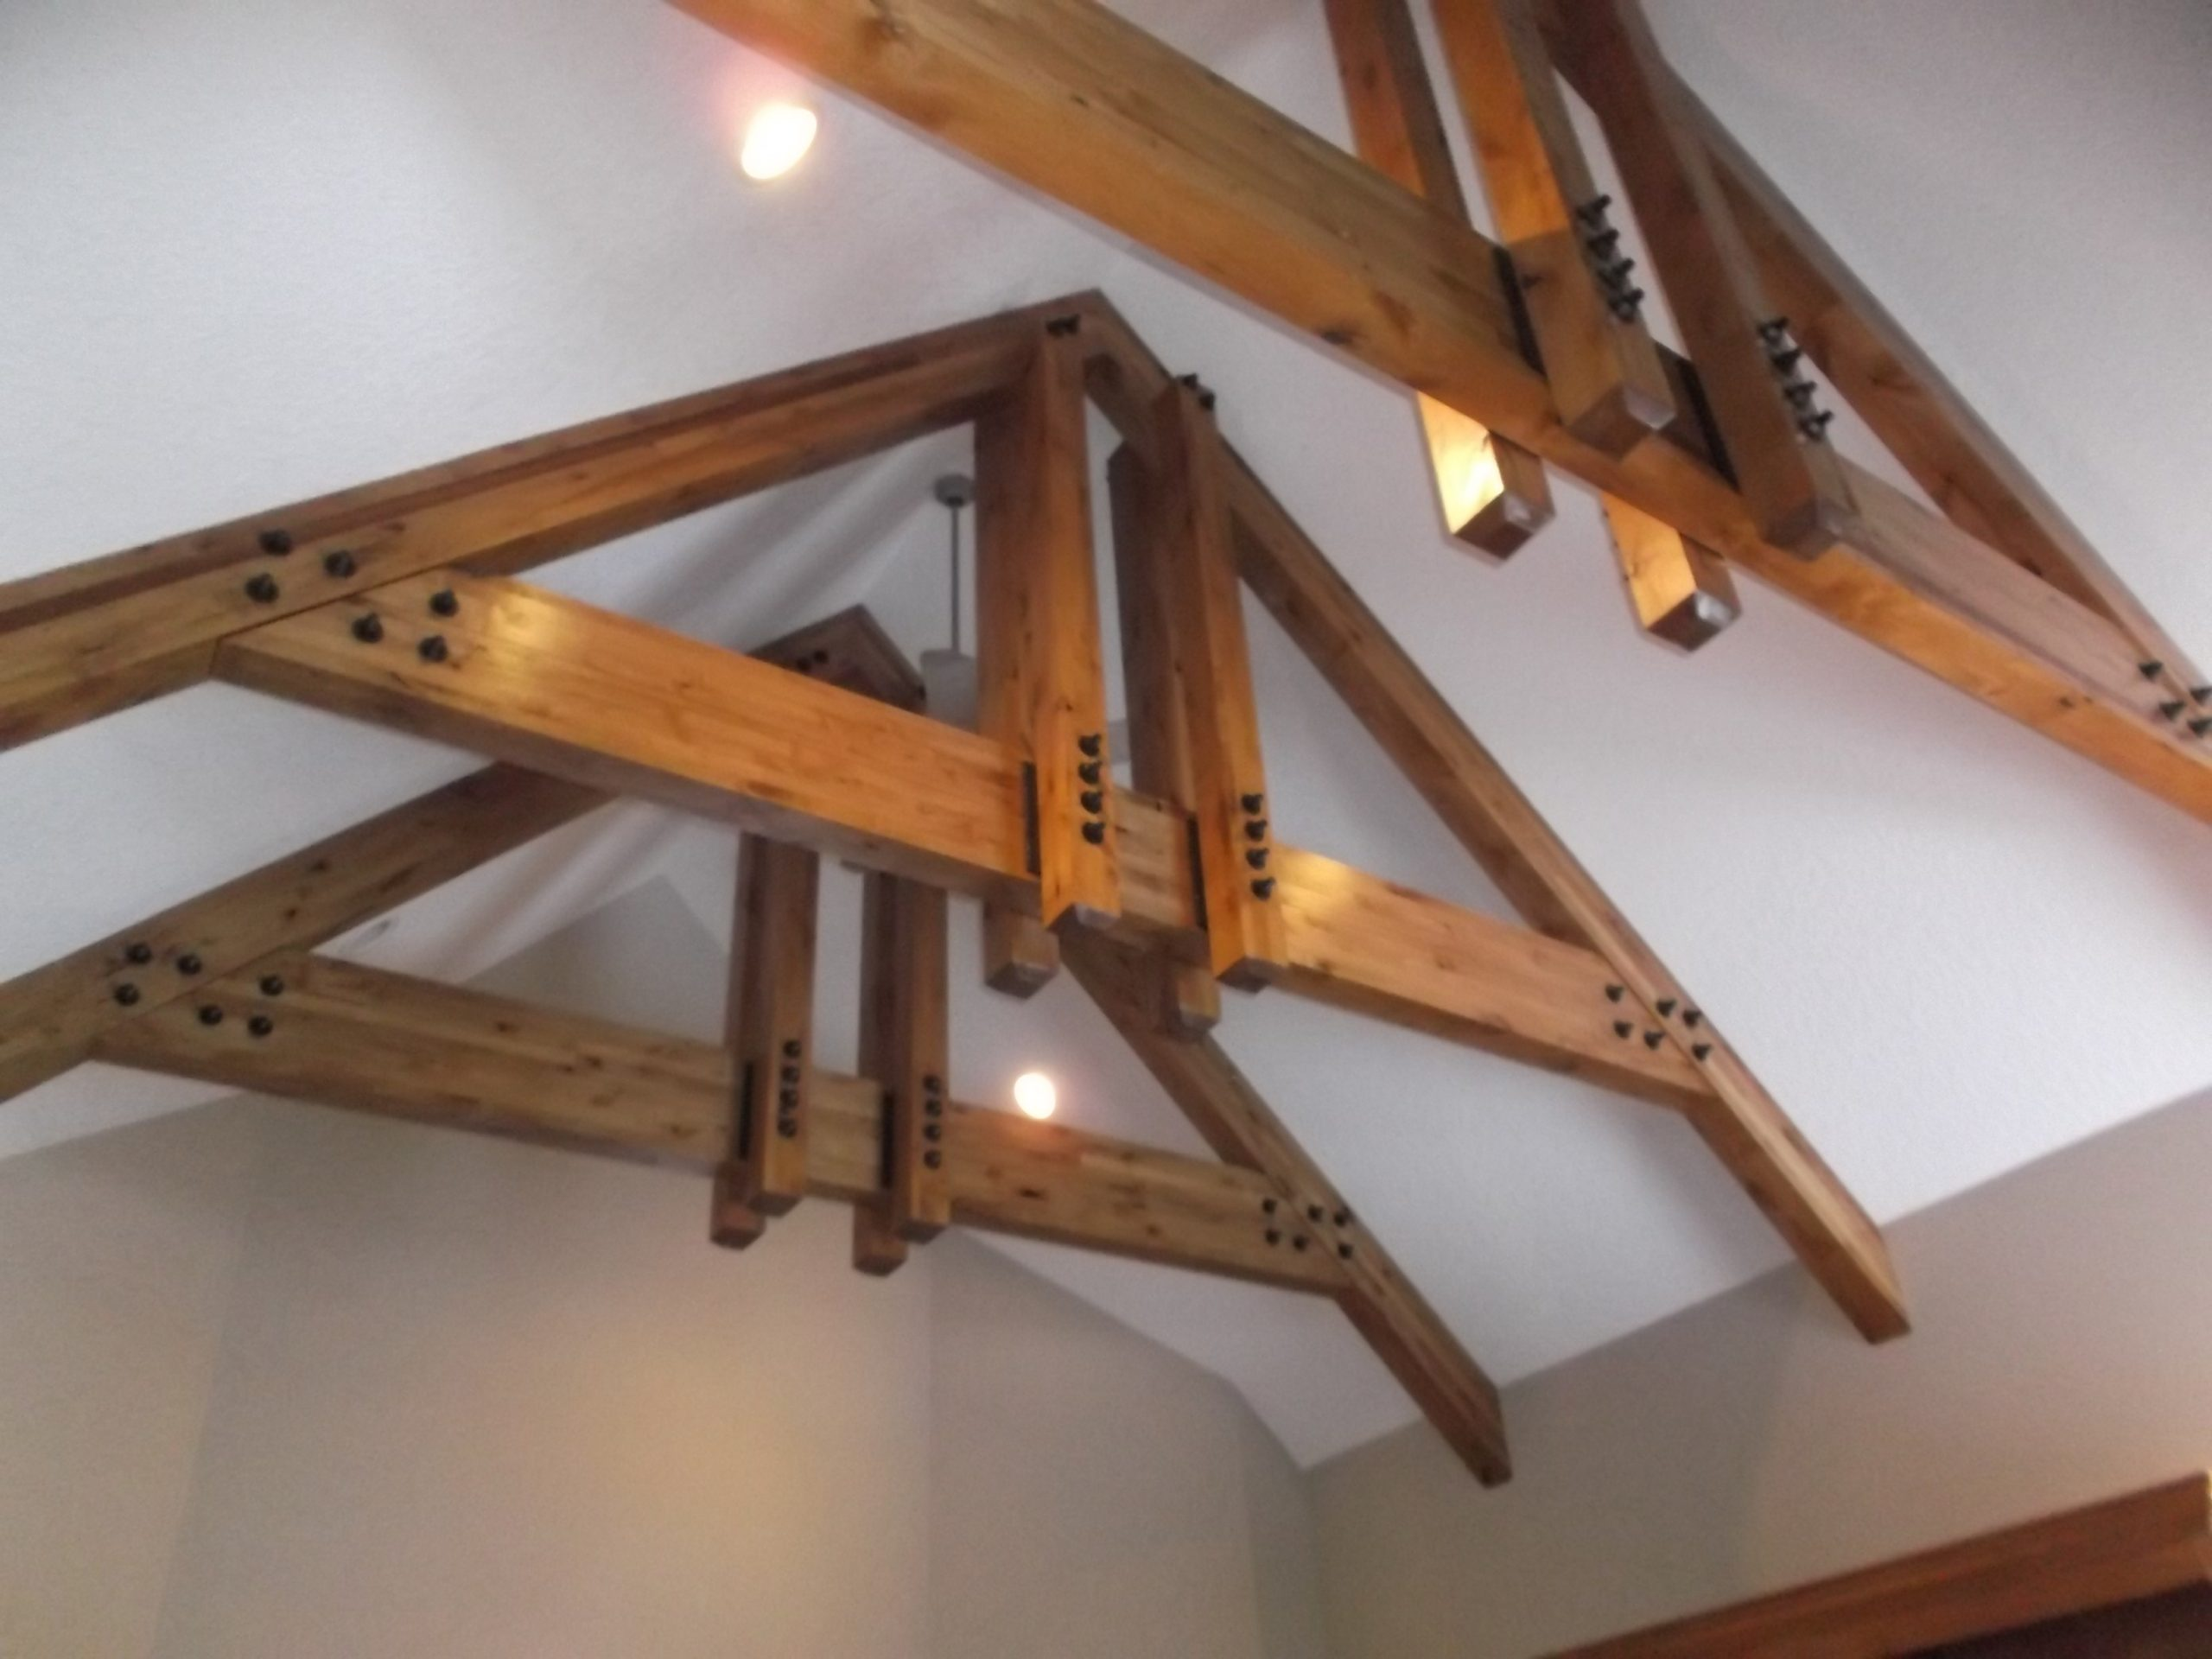 While we loved the vaulted ceilings, the beams for our new design needed to have a sleeker look, and the lighting needed an upgrade and a personality.